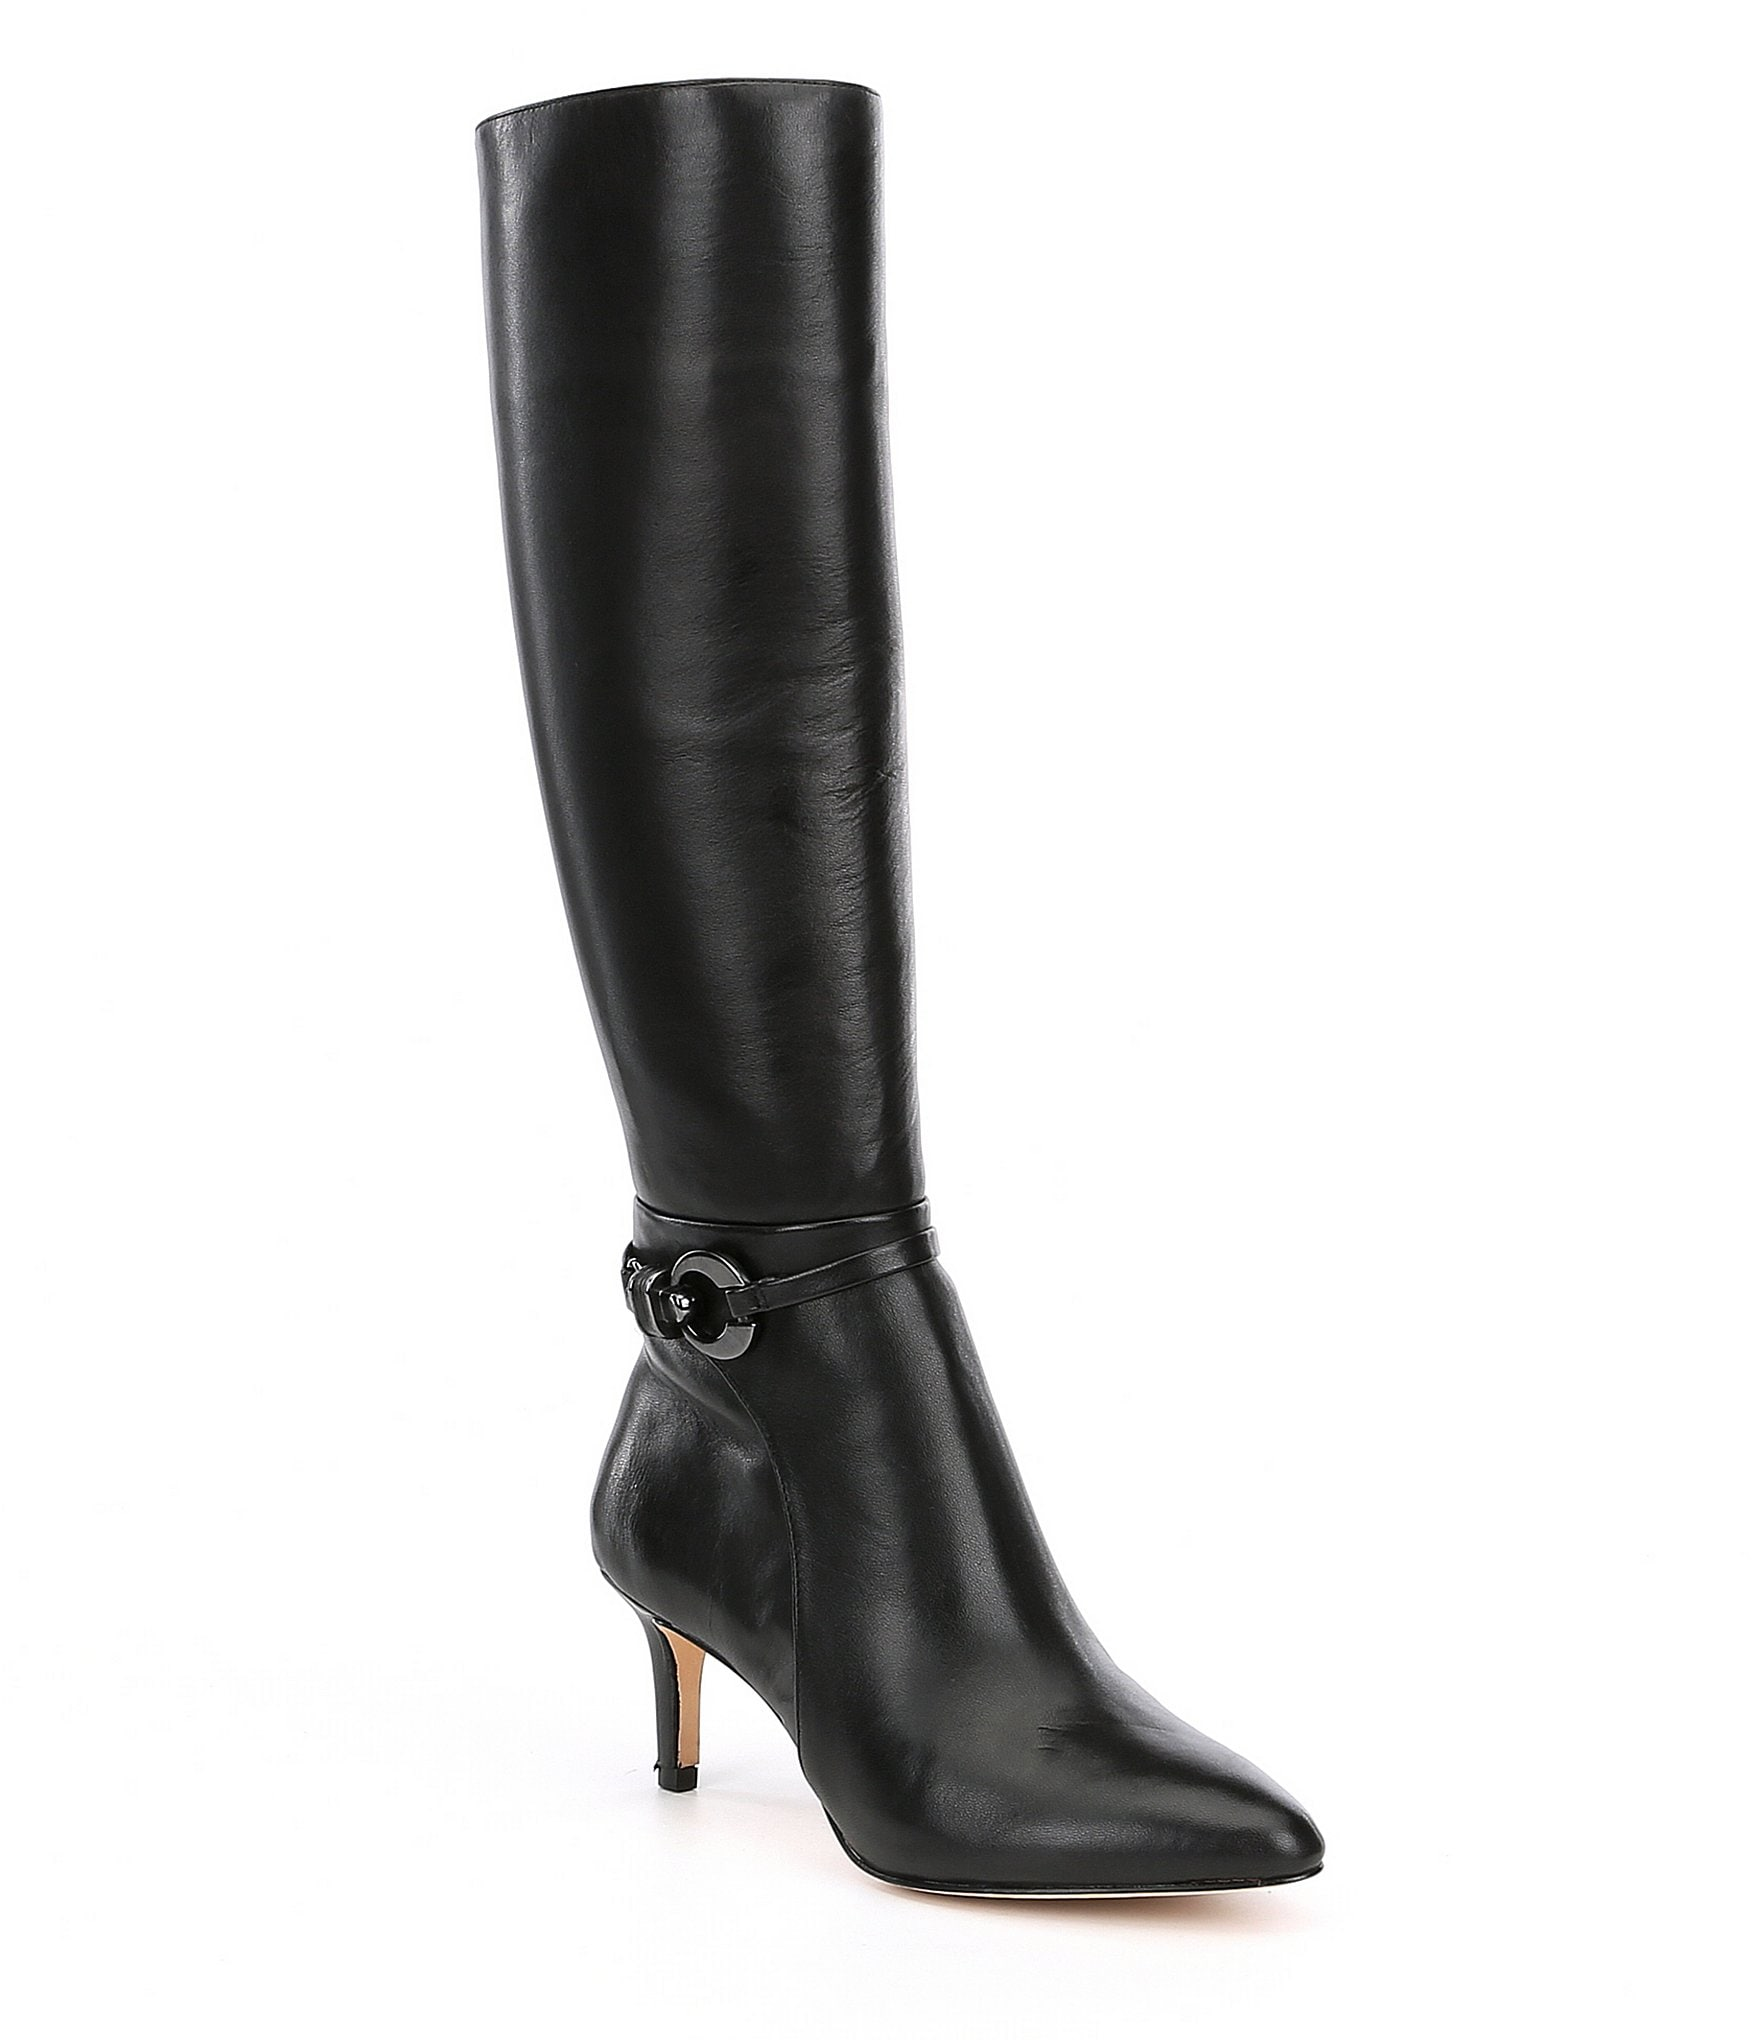 Model More Boot Brands, Such As Stuart Weitzman, Hunter And J Crew, Are Offering Extended Calf Sizes 15inch, Versus 13 Or 14inch Another Of Masons Favorite Boot Sources, Whether For A Narrow Or